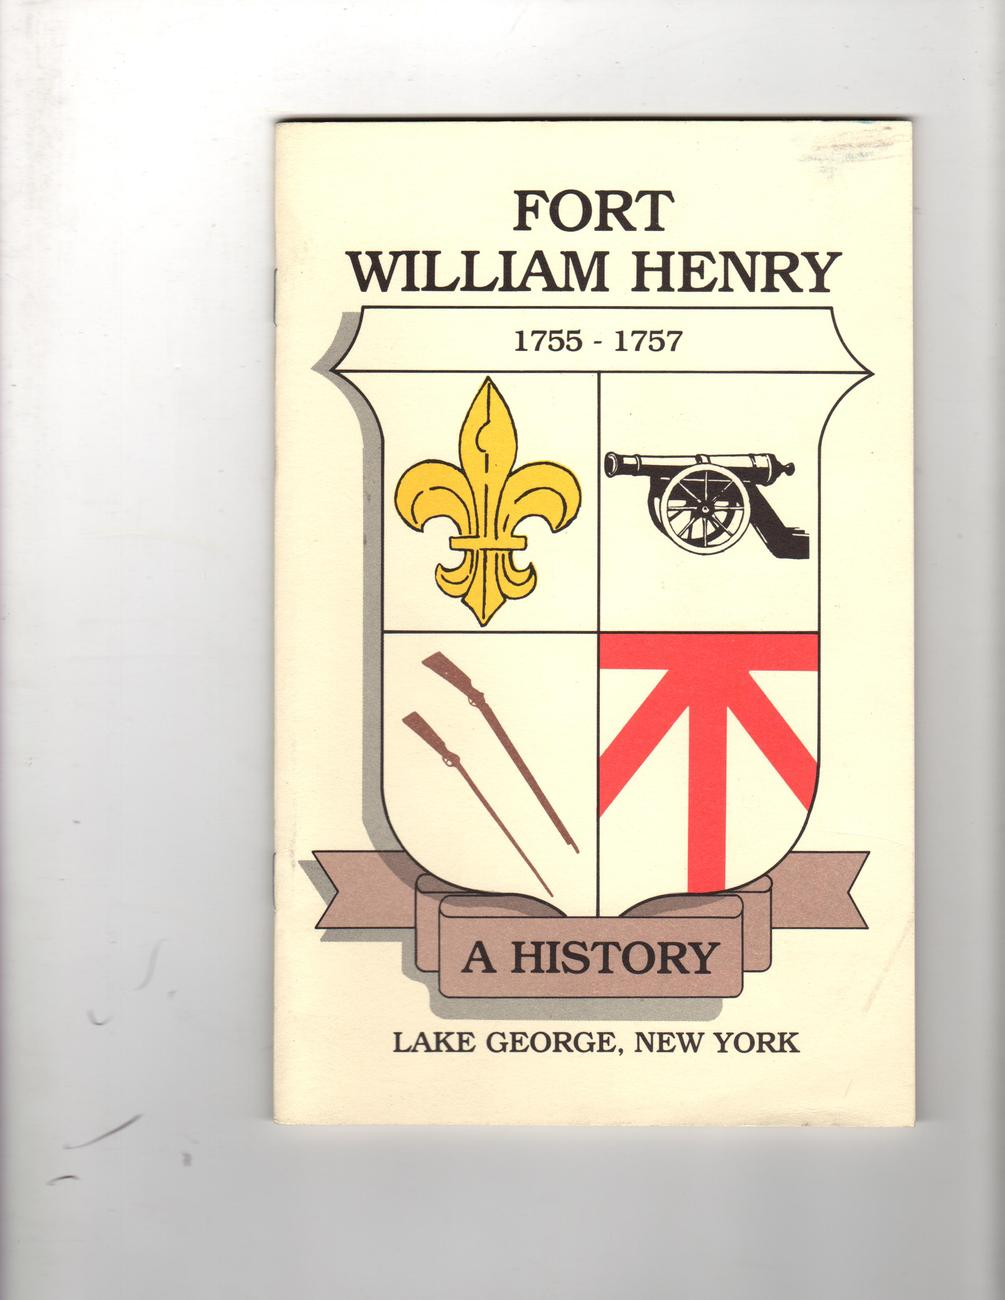 Fort William Henry 1775-1757 A History , Lake George, New York